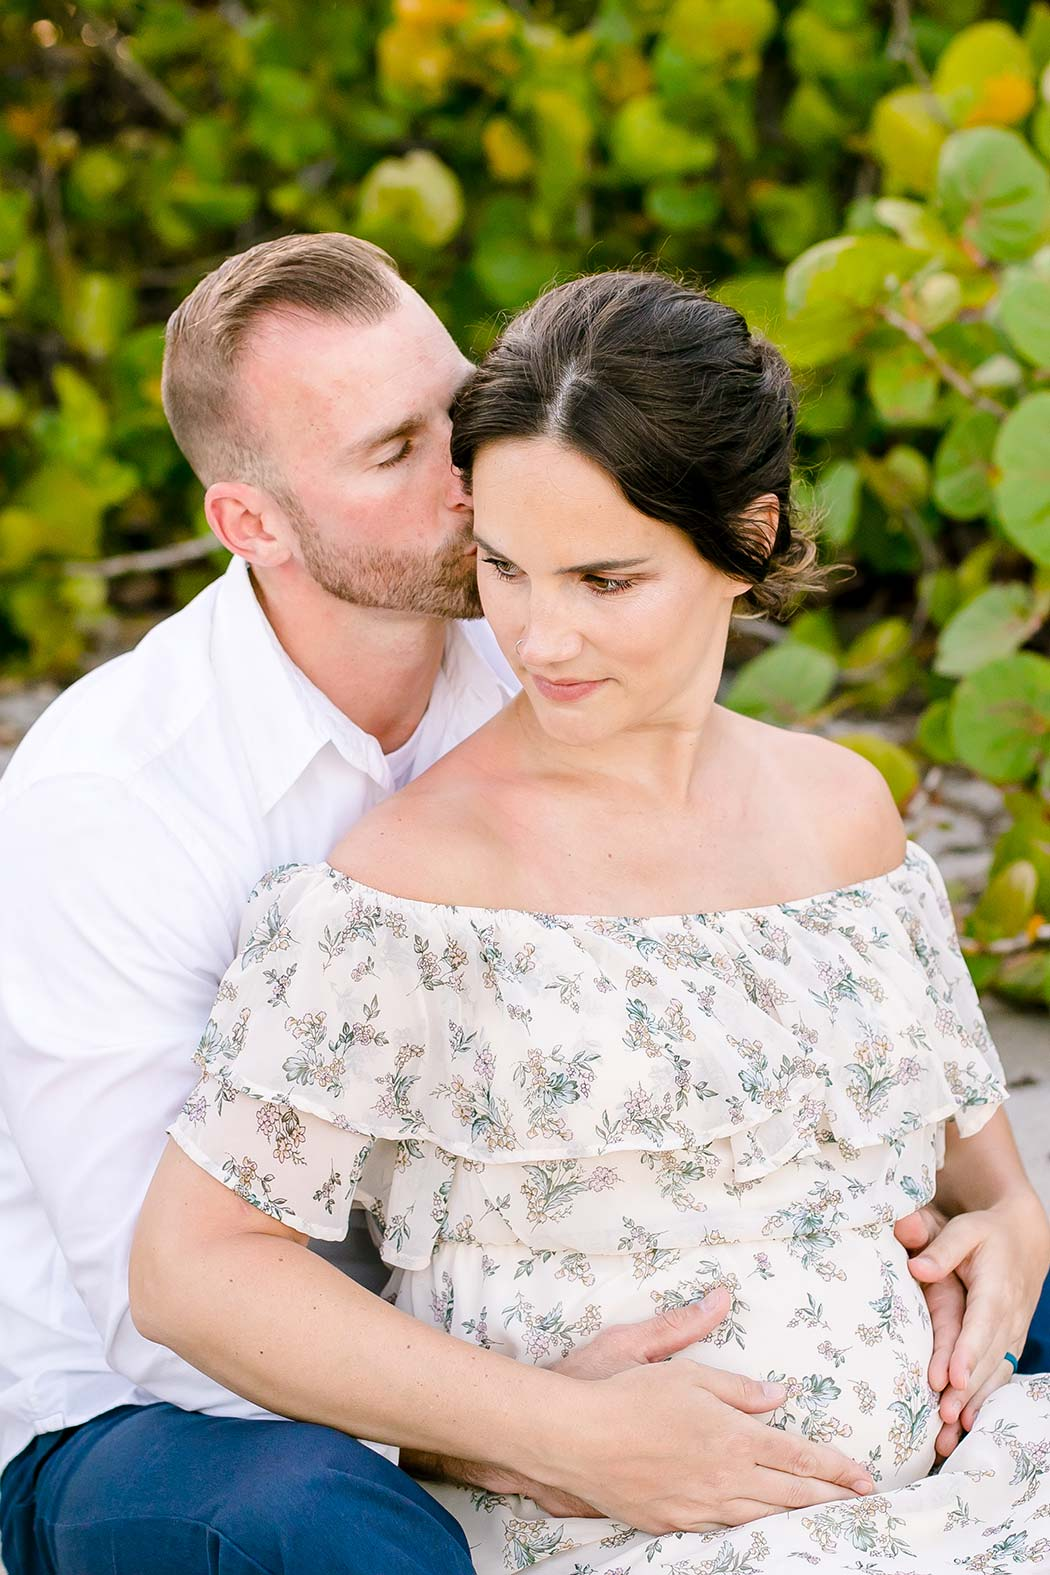 dania beach family maternity photoshoot with couple | beach maternity pictures | fort lauderdale maternity photographer | husband kisses wife during maternity photography